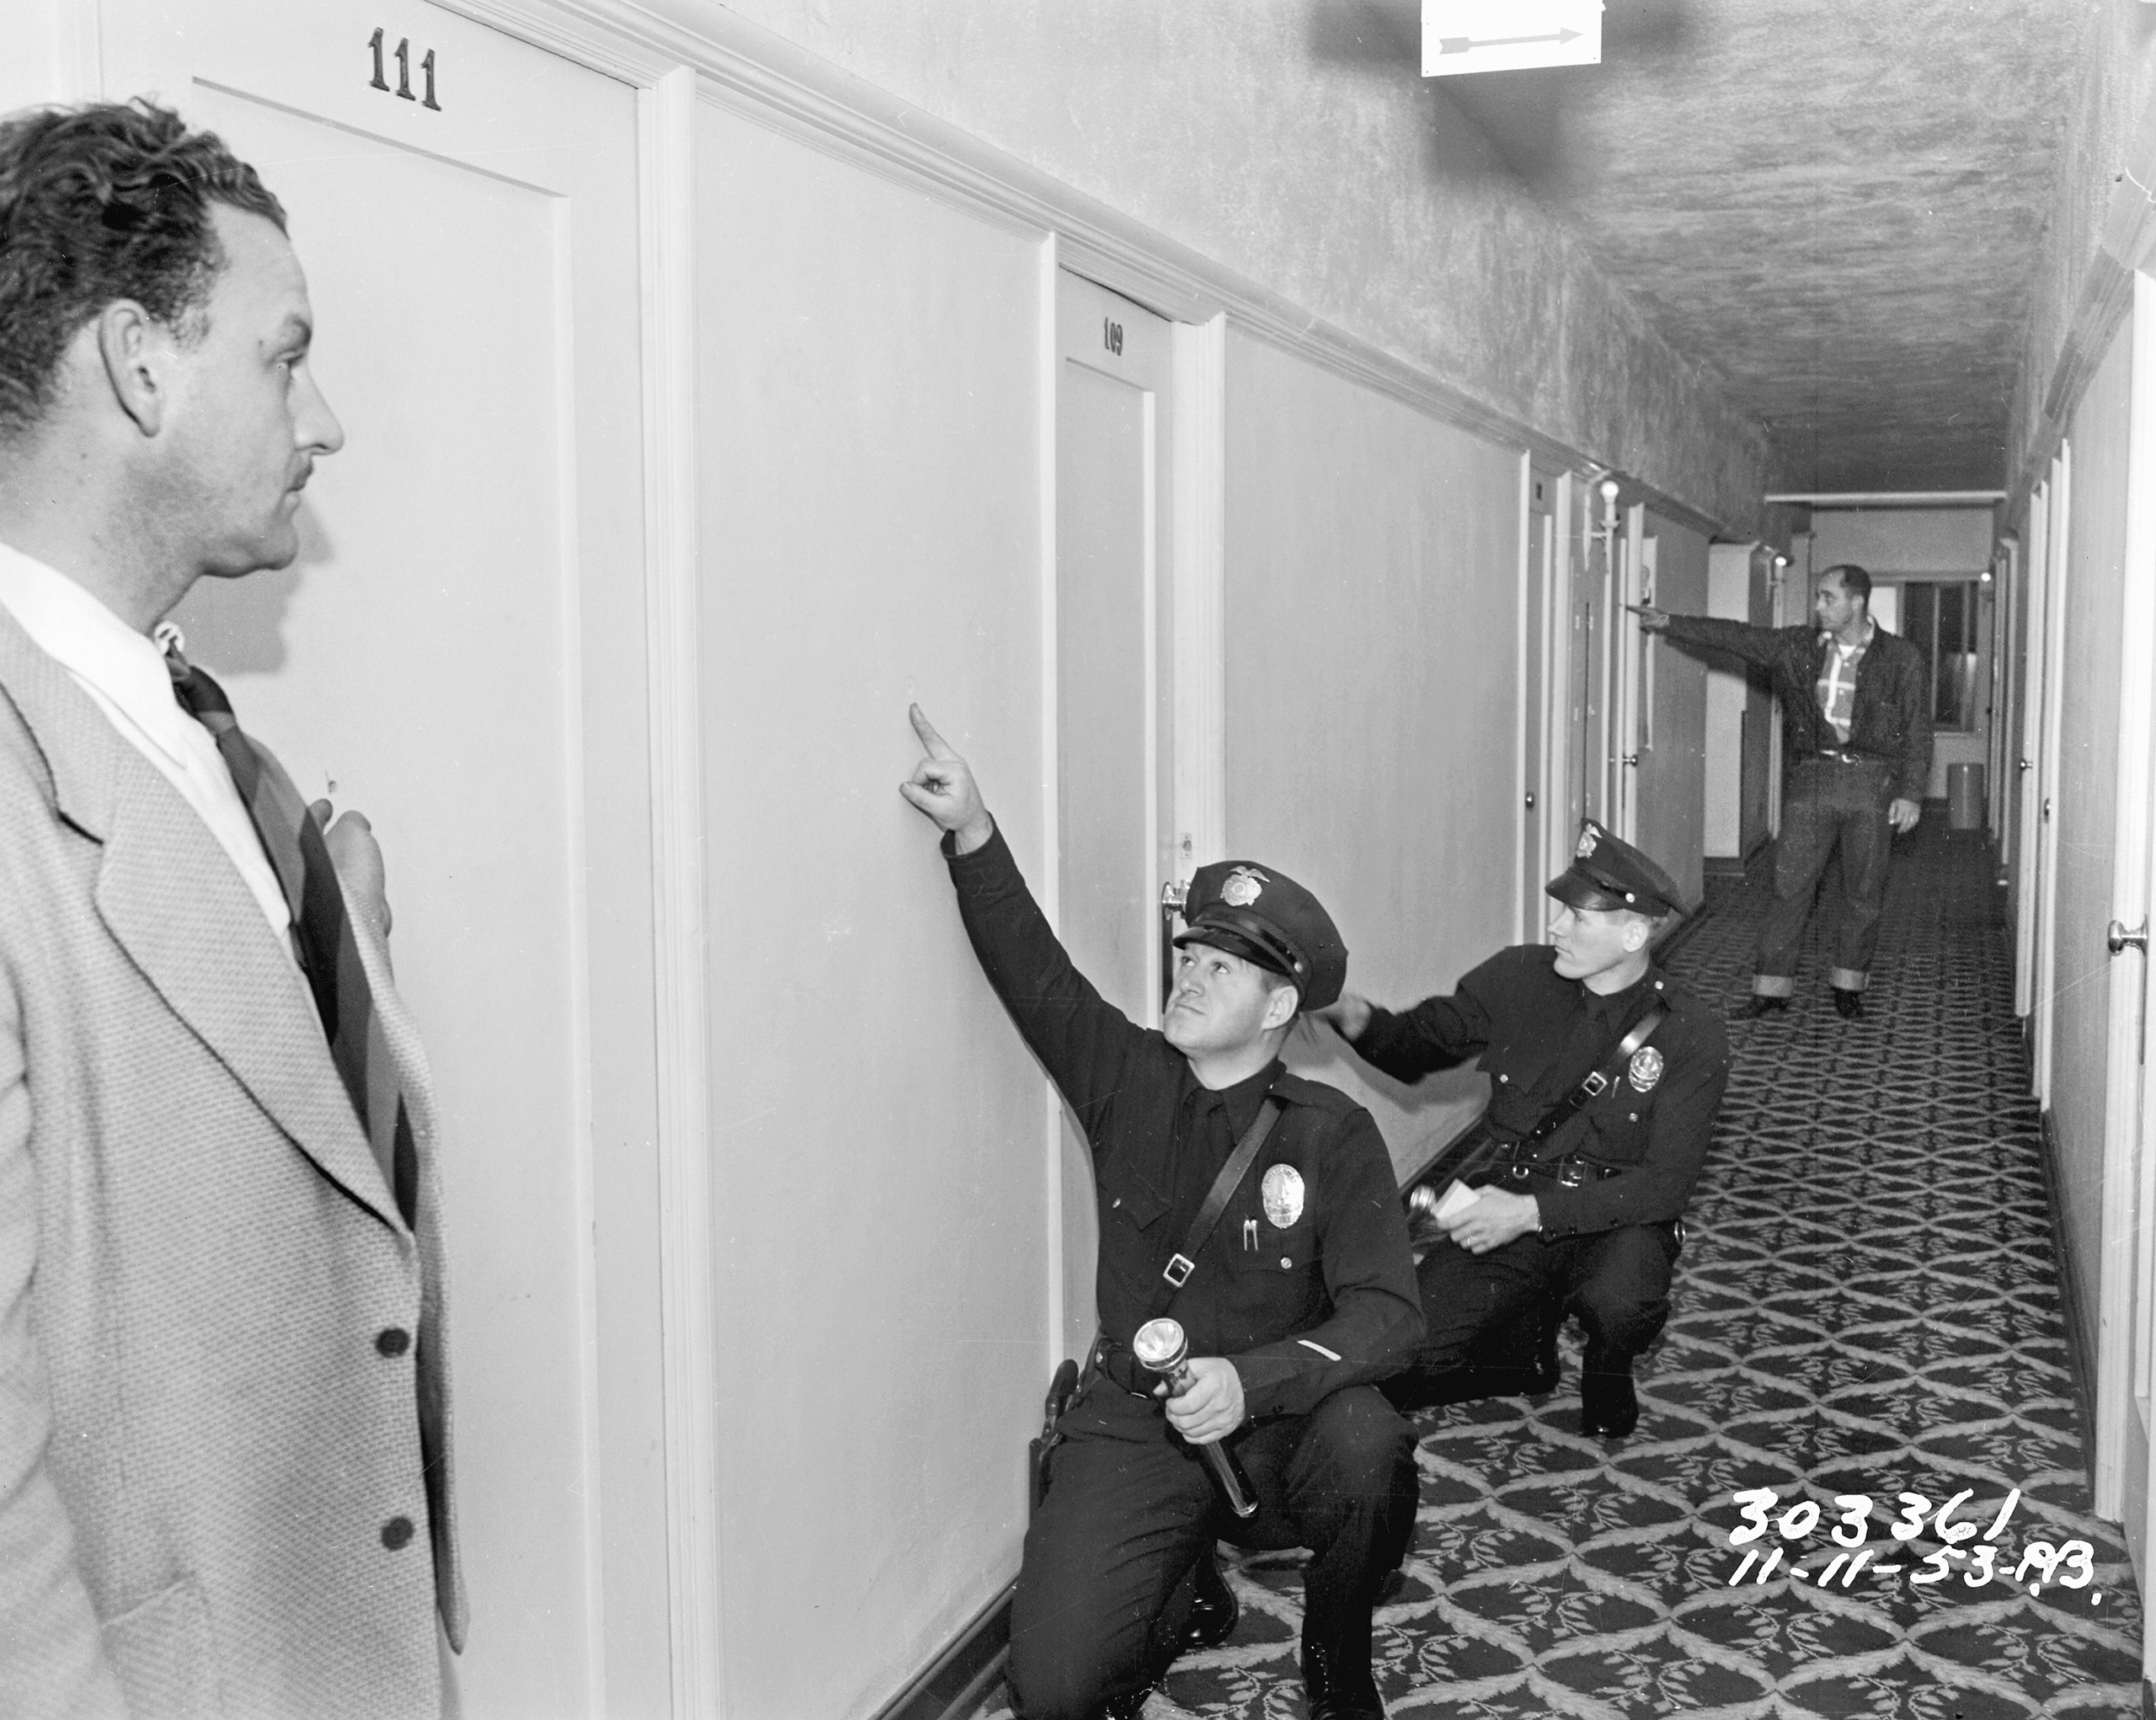 Bad boys in Tinseltown go on shooting spree in apartment building on November 11, 1953.